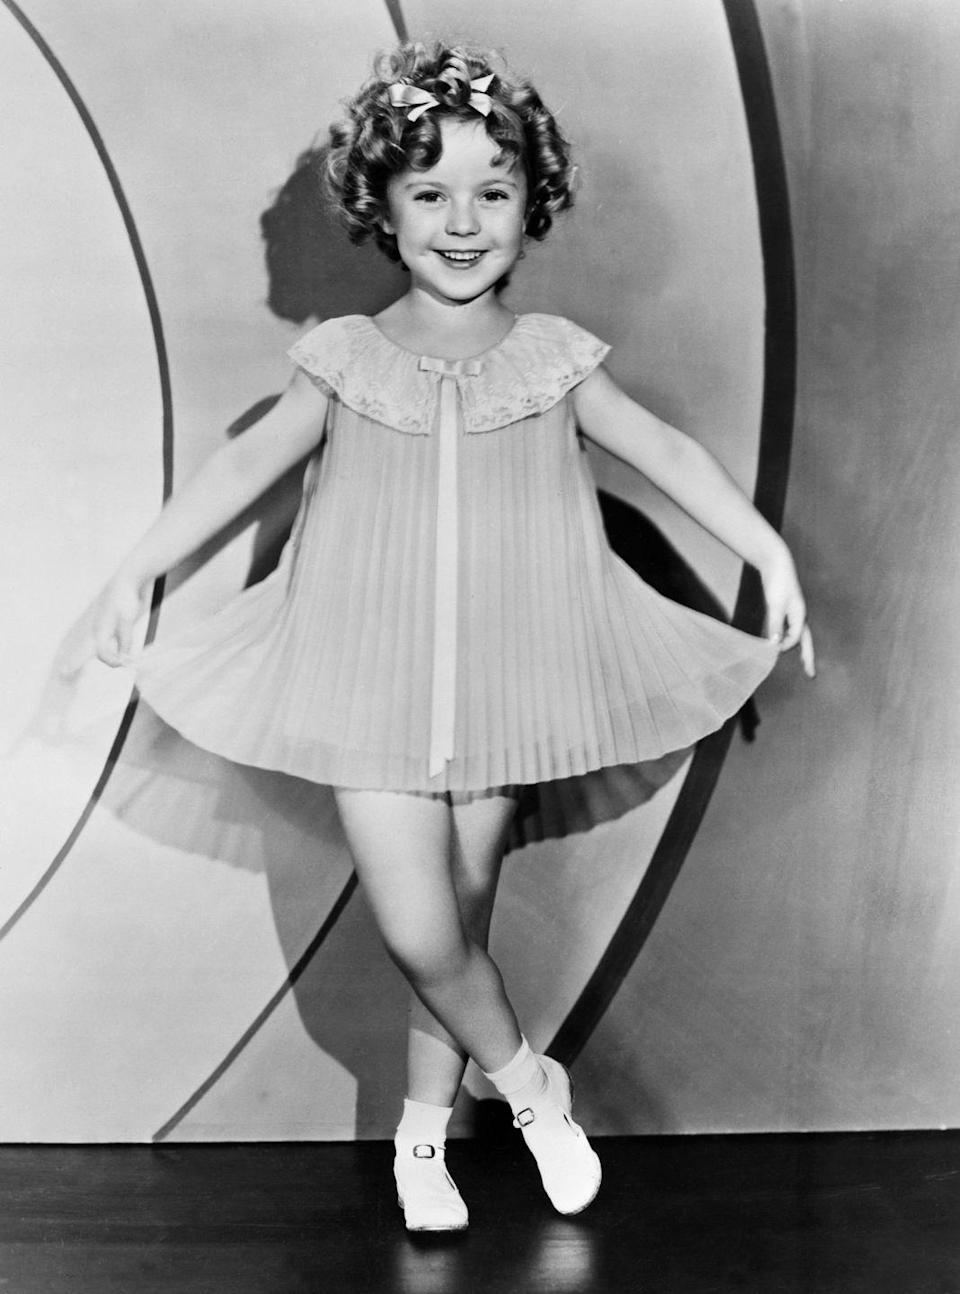 """<p>While the country was in the depths of the Great Depression, President Roosevelt referred to the child star as <a href=""""https://www.cnn.com/2014/02/11/showbiz/movies/shirley-temple-child-star-appreciation/index.html"""" rel=""""nofollow noopener"""" target=""""_blank"""" data-ylk=""""slk:Little Miss Miracle"""" class=""""link rapid-noclick-resp"""">Little Miss Miracle</a> and credited her with boosting the country's morale. By 1935, Shirley was the biggest film star in America. That year she released some of her most beloved films, including <em>Curly Top </em>to <em>The Littlest Rebel</em>, and worked with some of the biggest names in the business.<br></p>"""